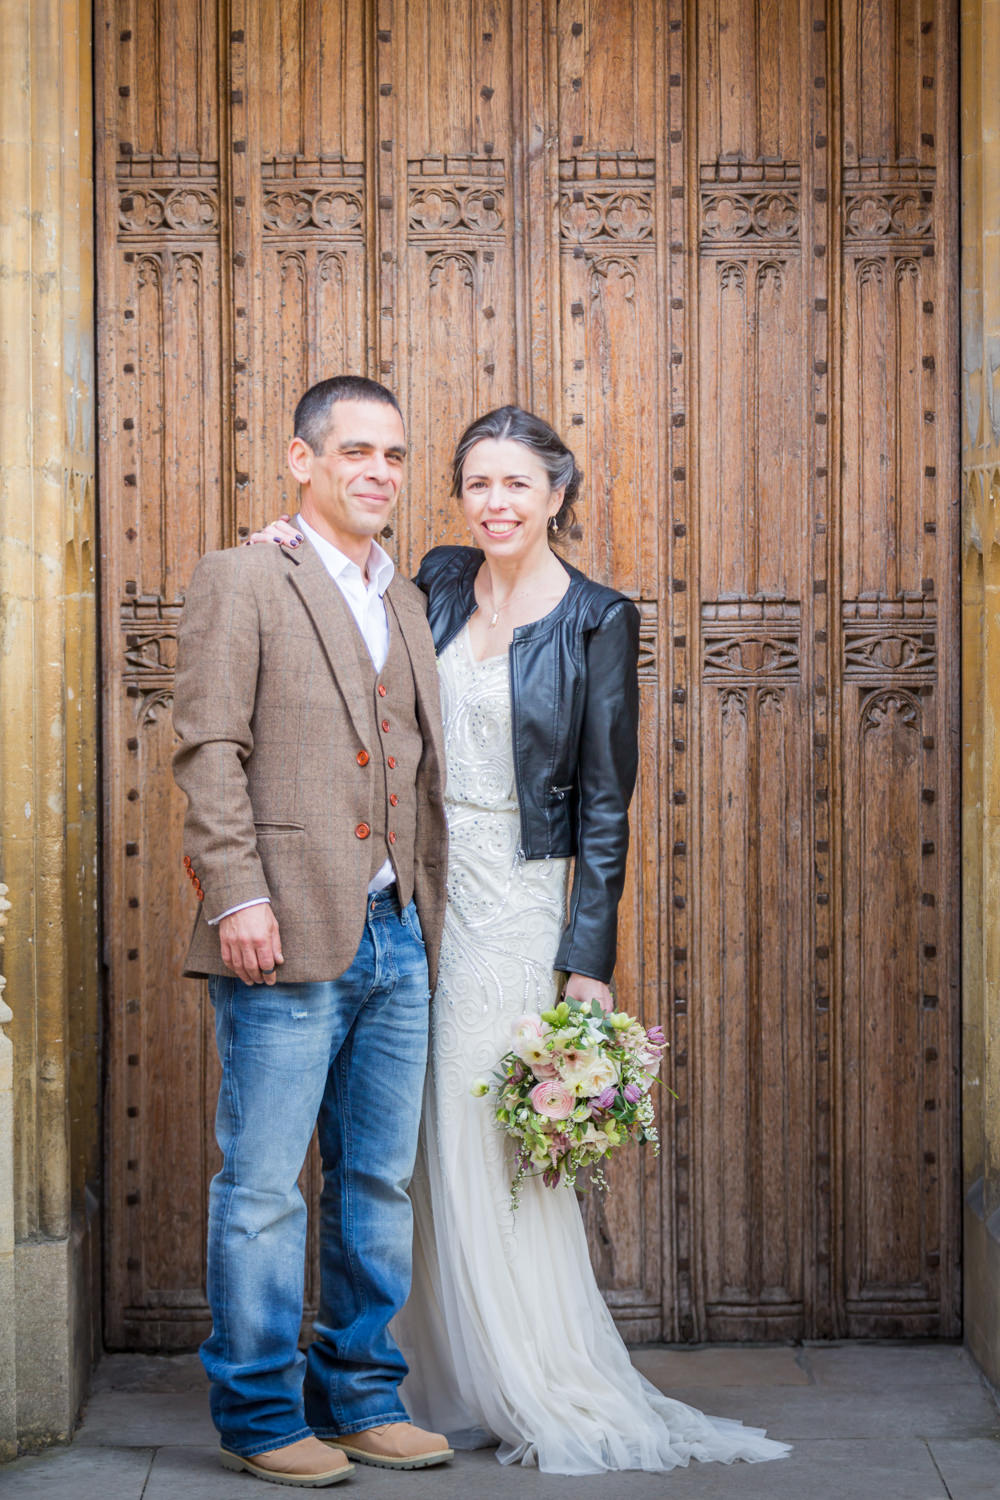 Bride Bridal Beaded Fitted Phase Eight Dress Tweed Jacket Jeans Groom Leather Jacket Wildflower BouquetBodleian Library Wedding Anita Nicholson Photography